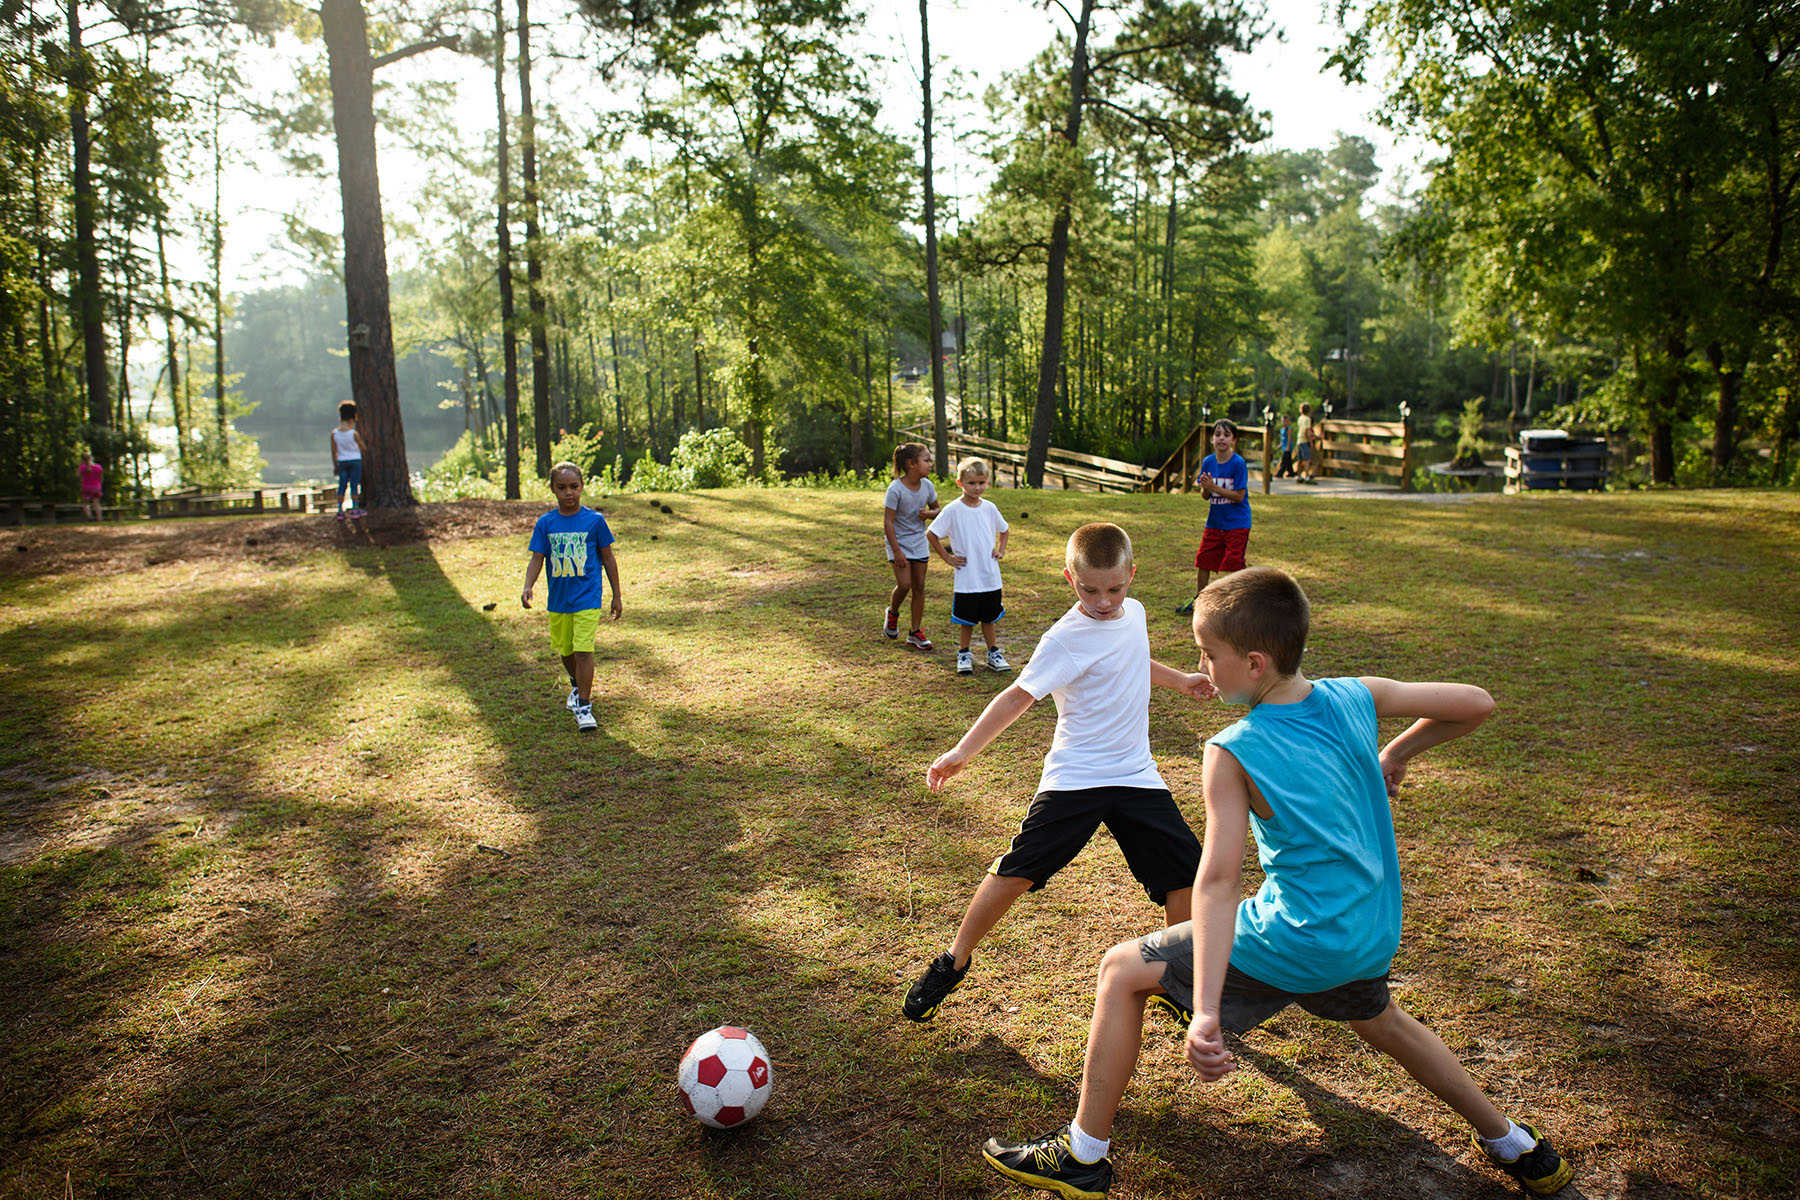 Second Place | Multiple PhotosAndrew Craft, The Fayetteville ObserverCampers kick around a soccer ball Monday, July 20, 2015, at Camp Rockfish.